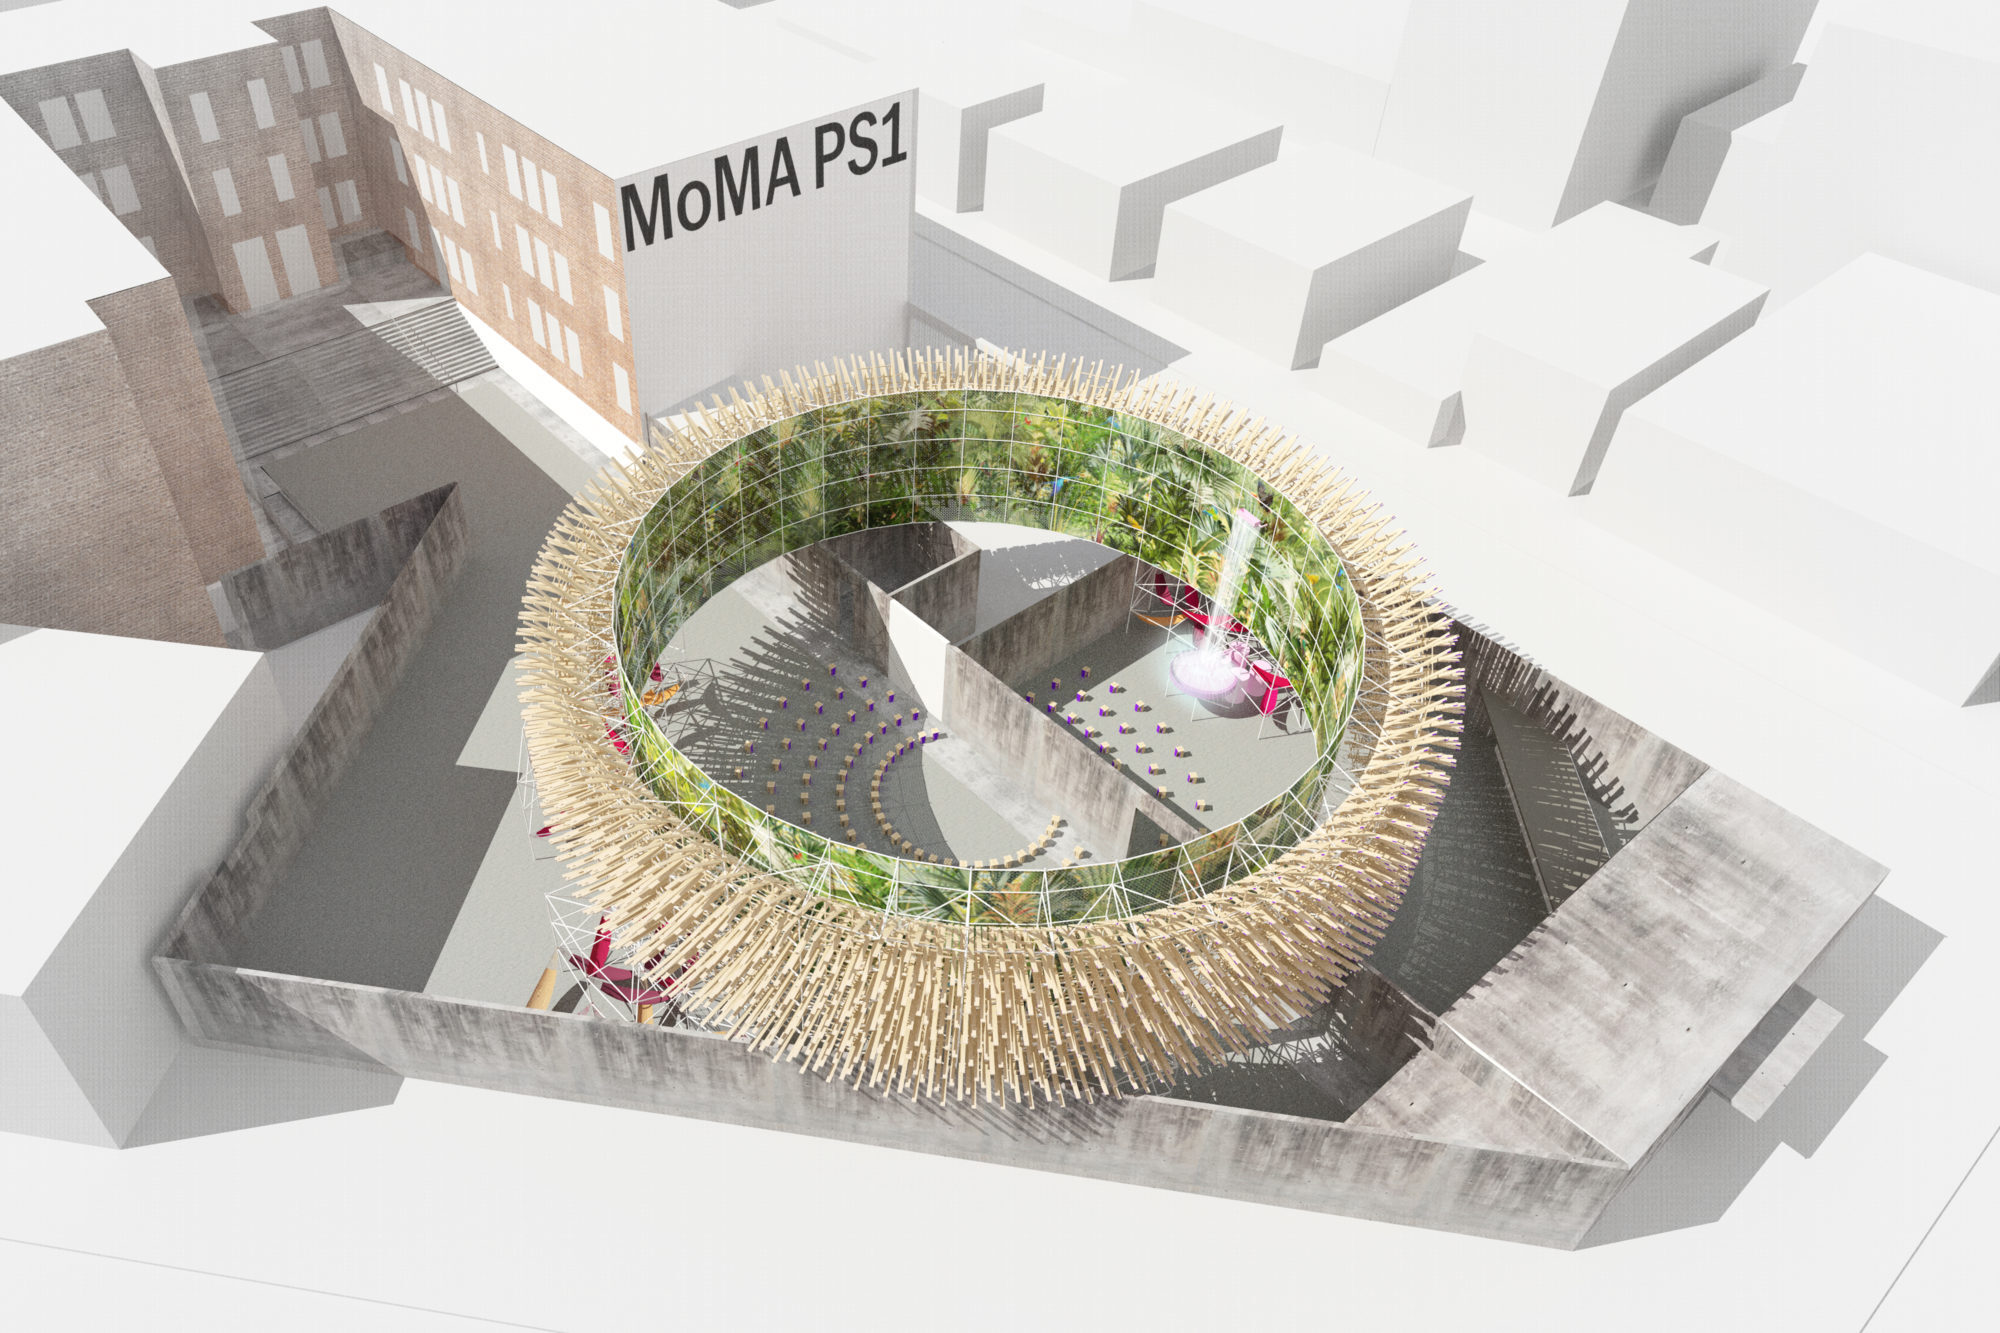 This immersive outdoor jungle installation is coming to MoMA PS1 this summer